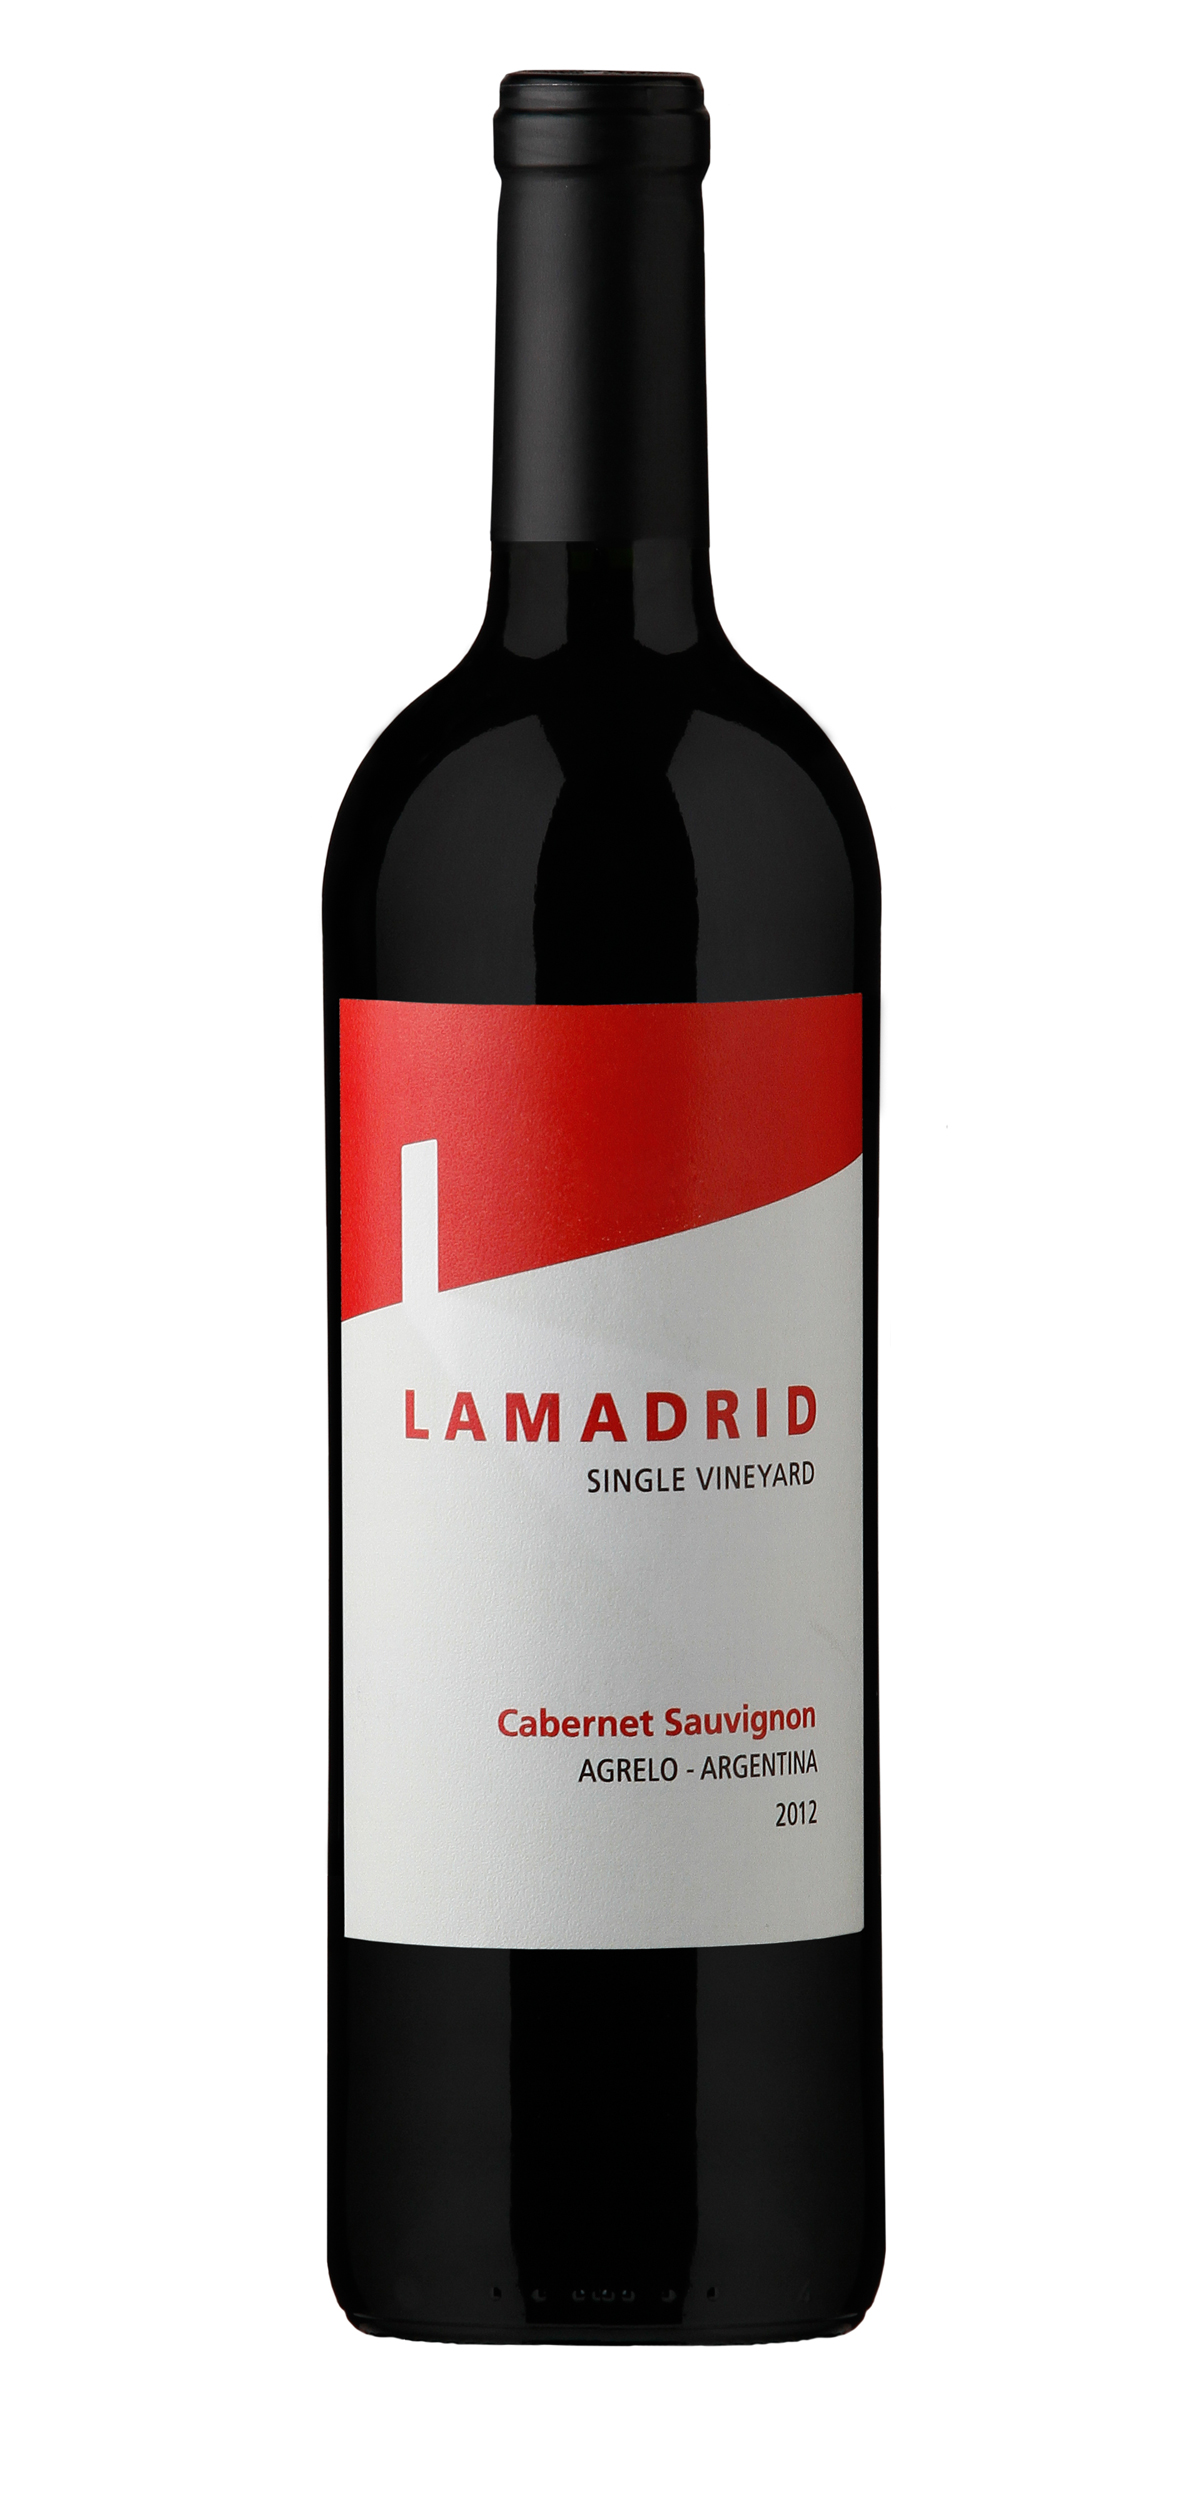 Lamadrid Cabernet Sauvignon wine bottle design